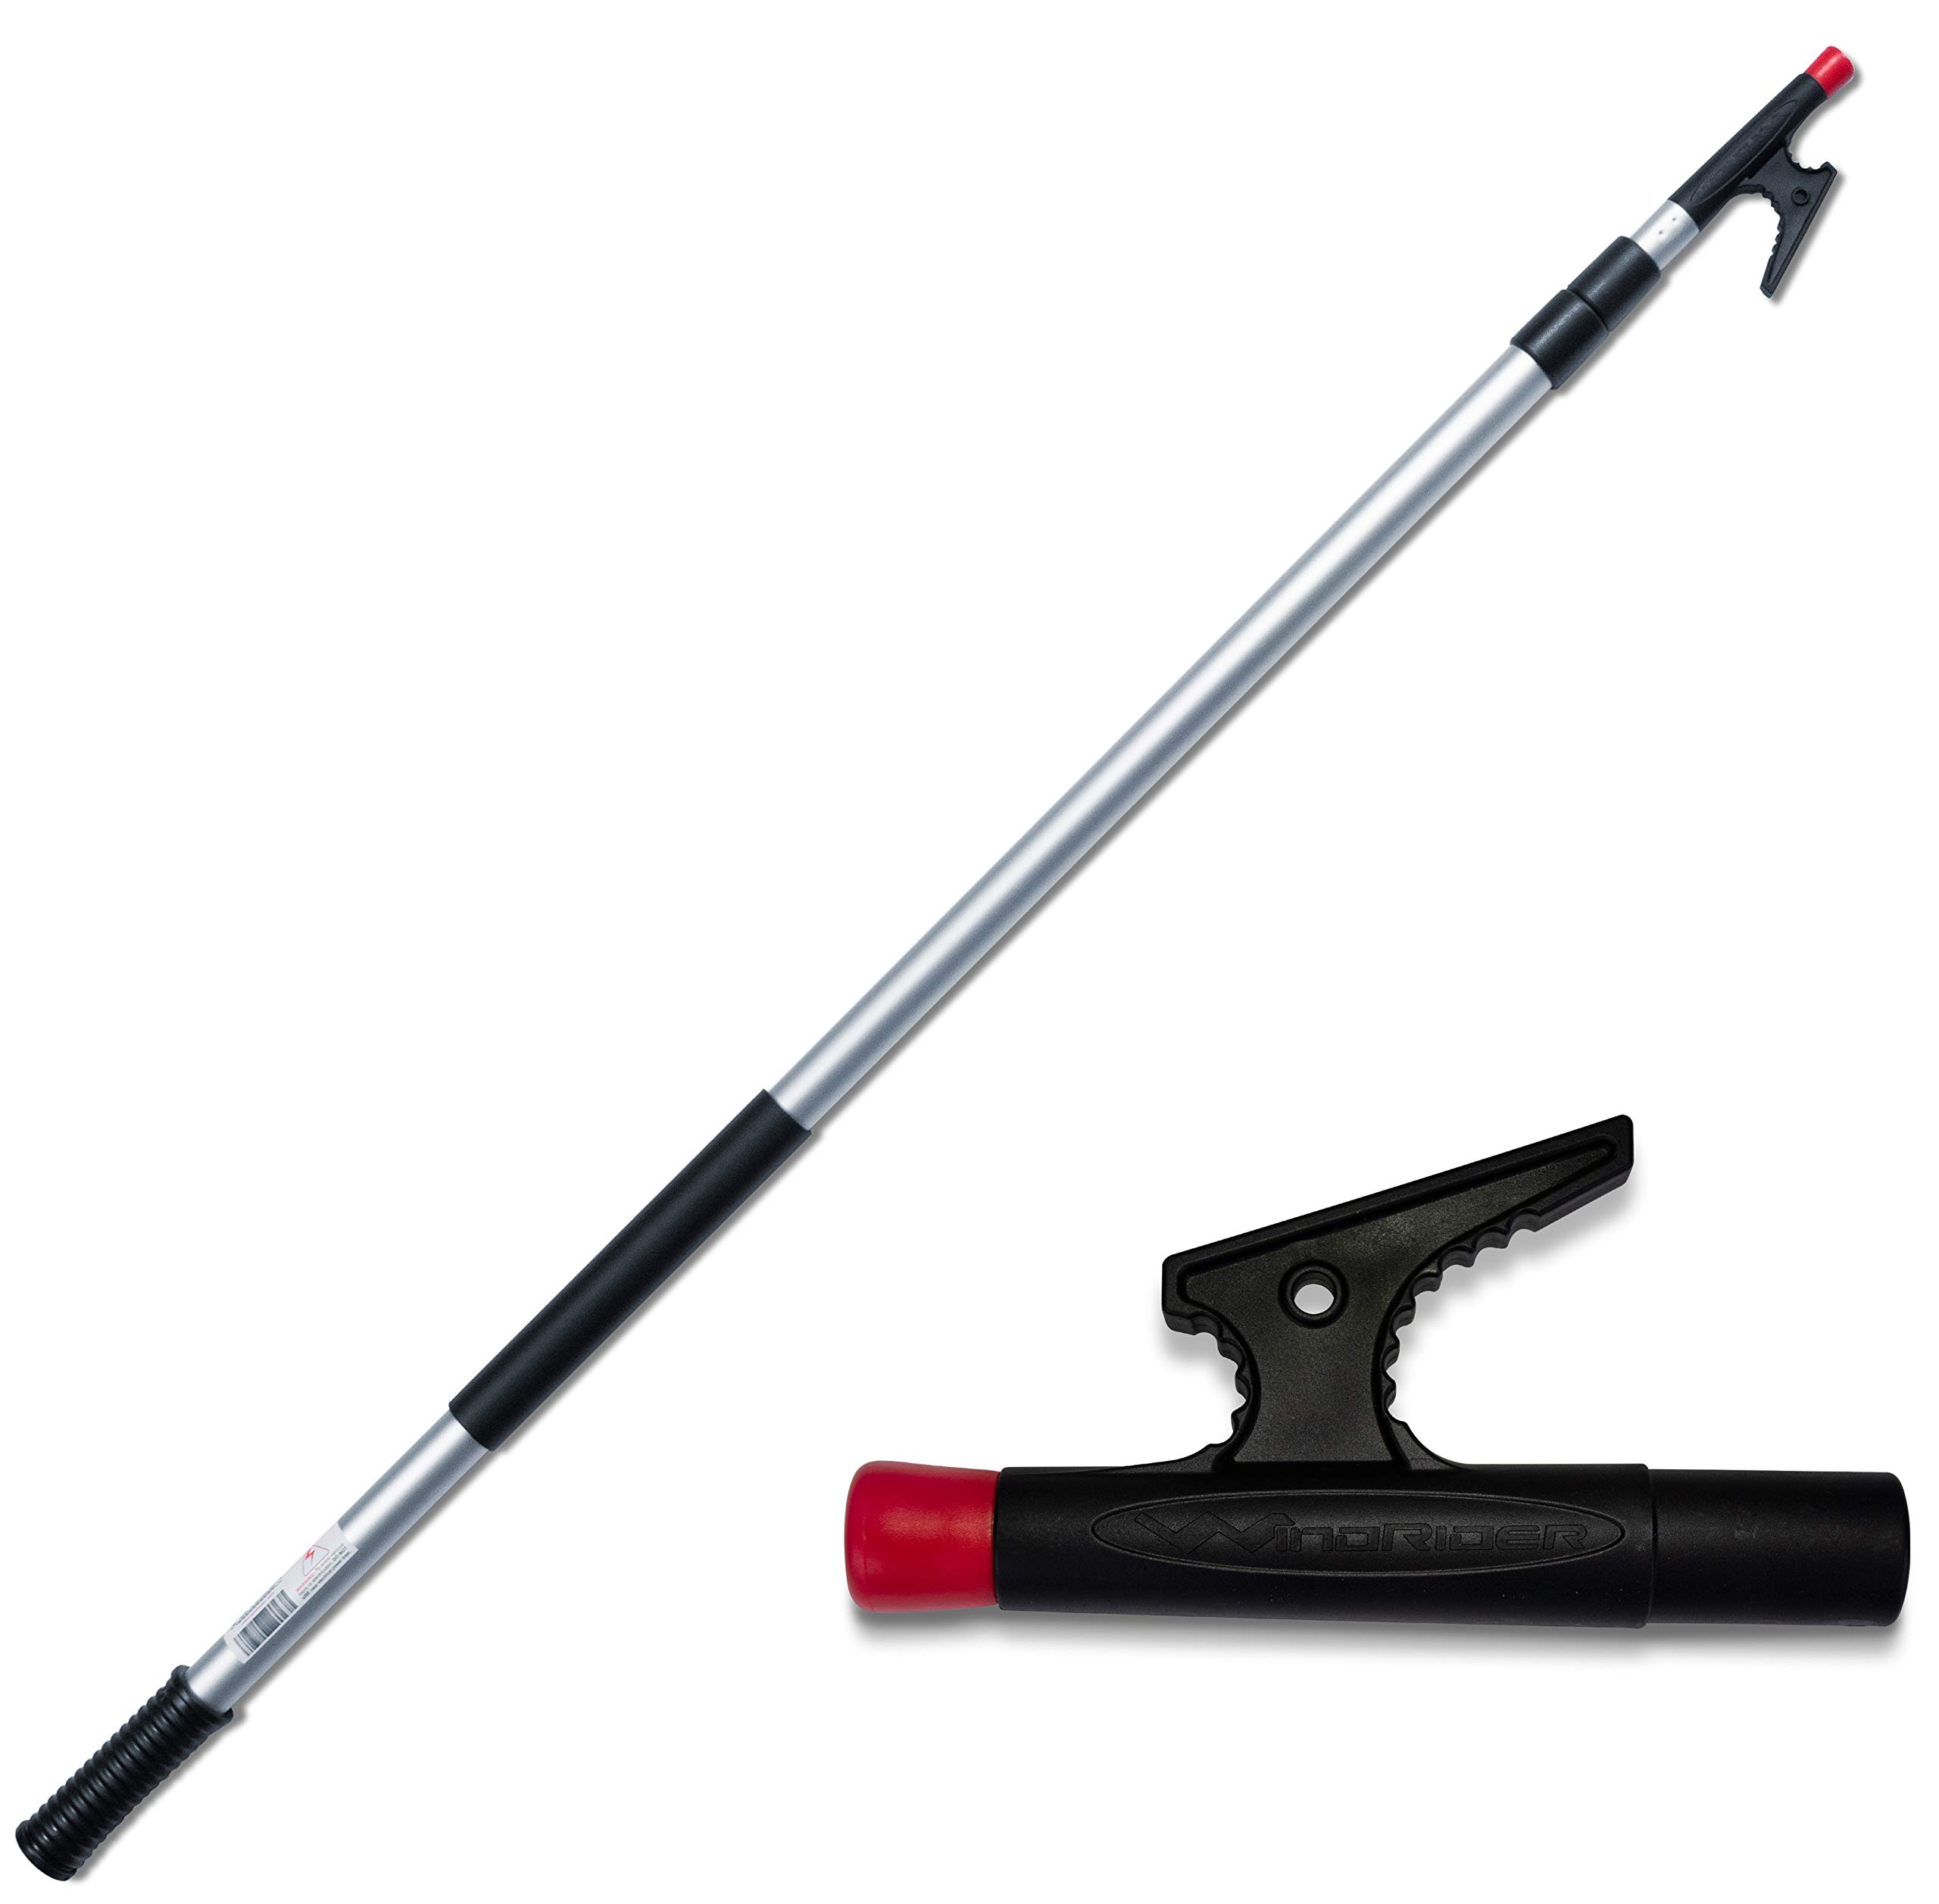 WindRider Telescoping Boat Hook | Floats | Double Grip | 4.5-12ft | Super Strong Hook | Threaded End for Accessories by WindRider